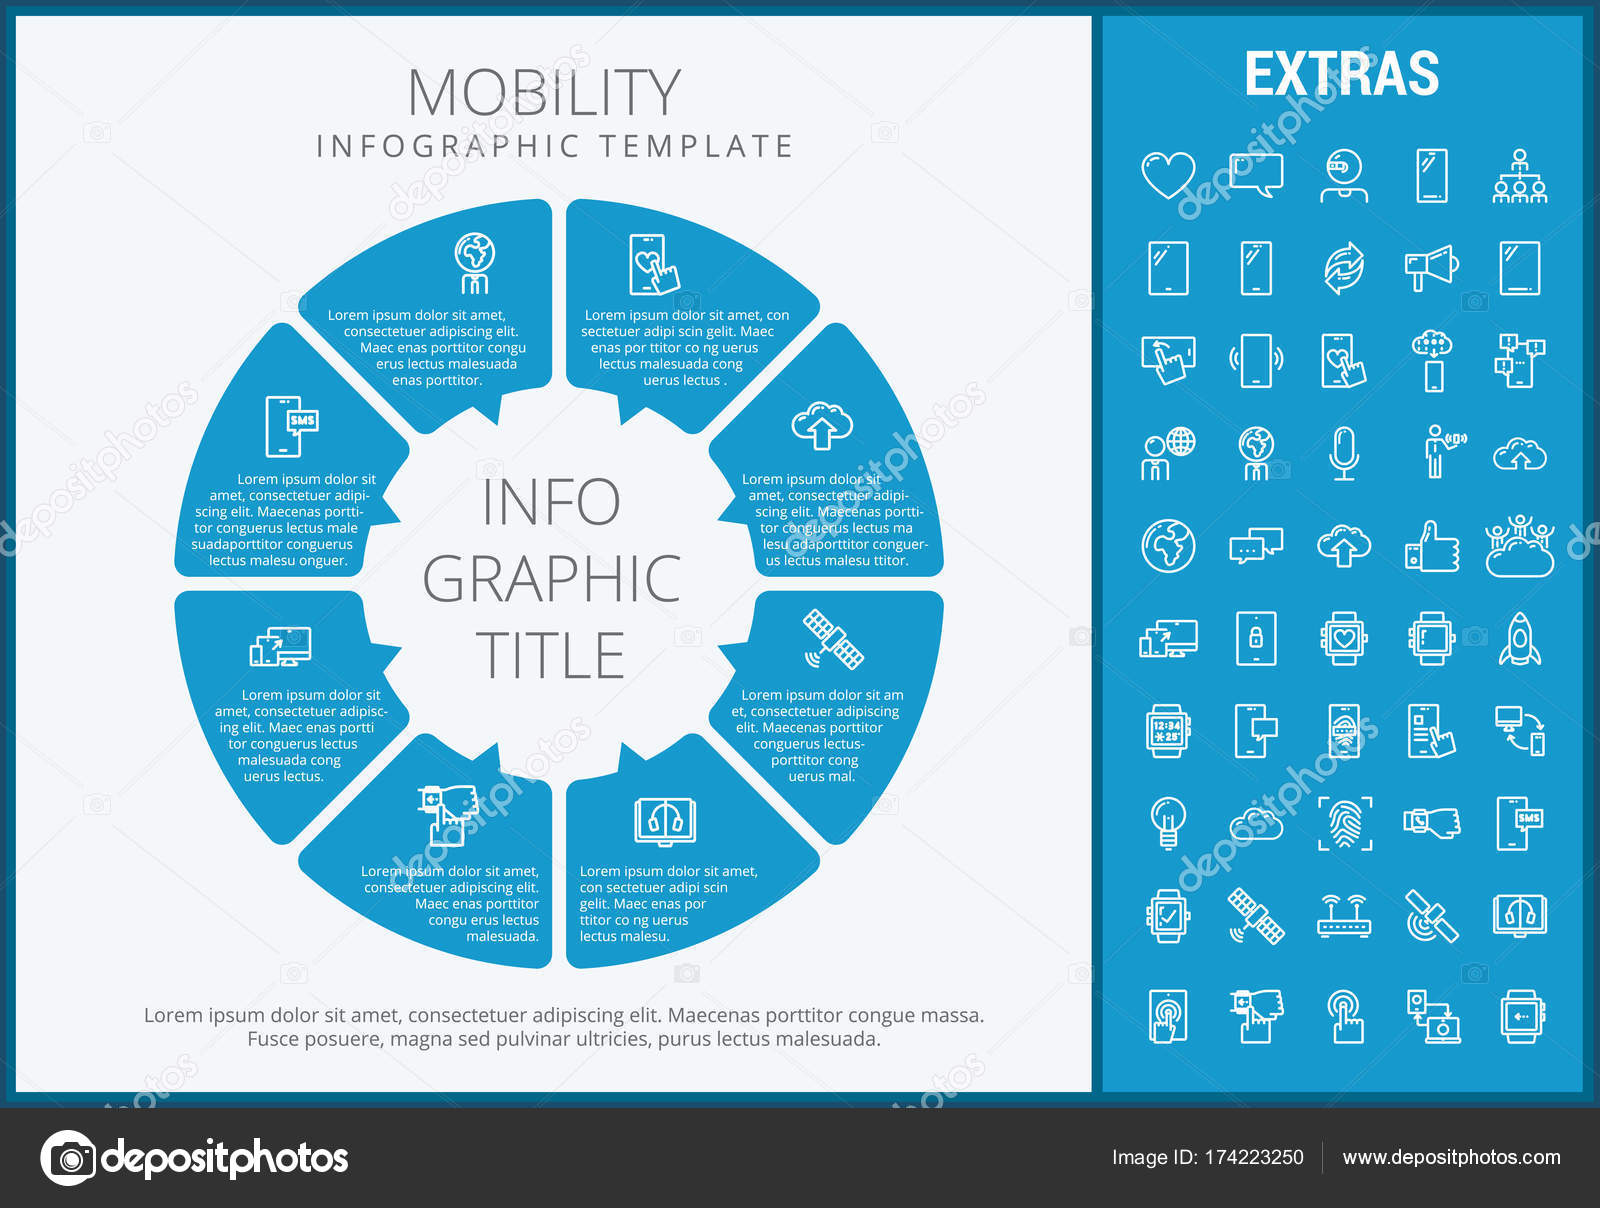 Mobility Infographic Template Elements And Icons Stock Vector